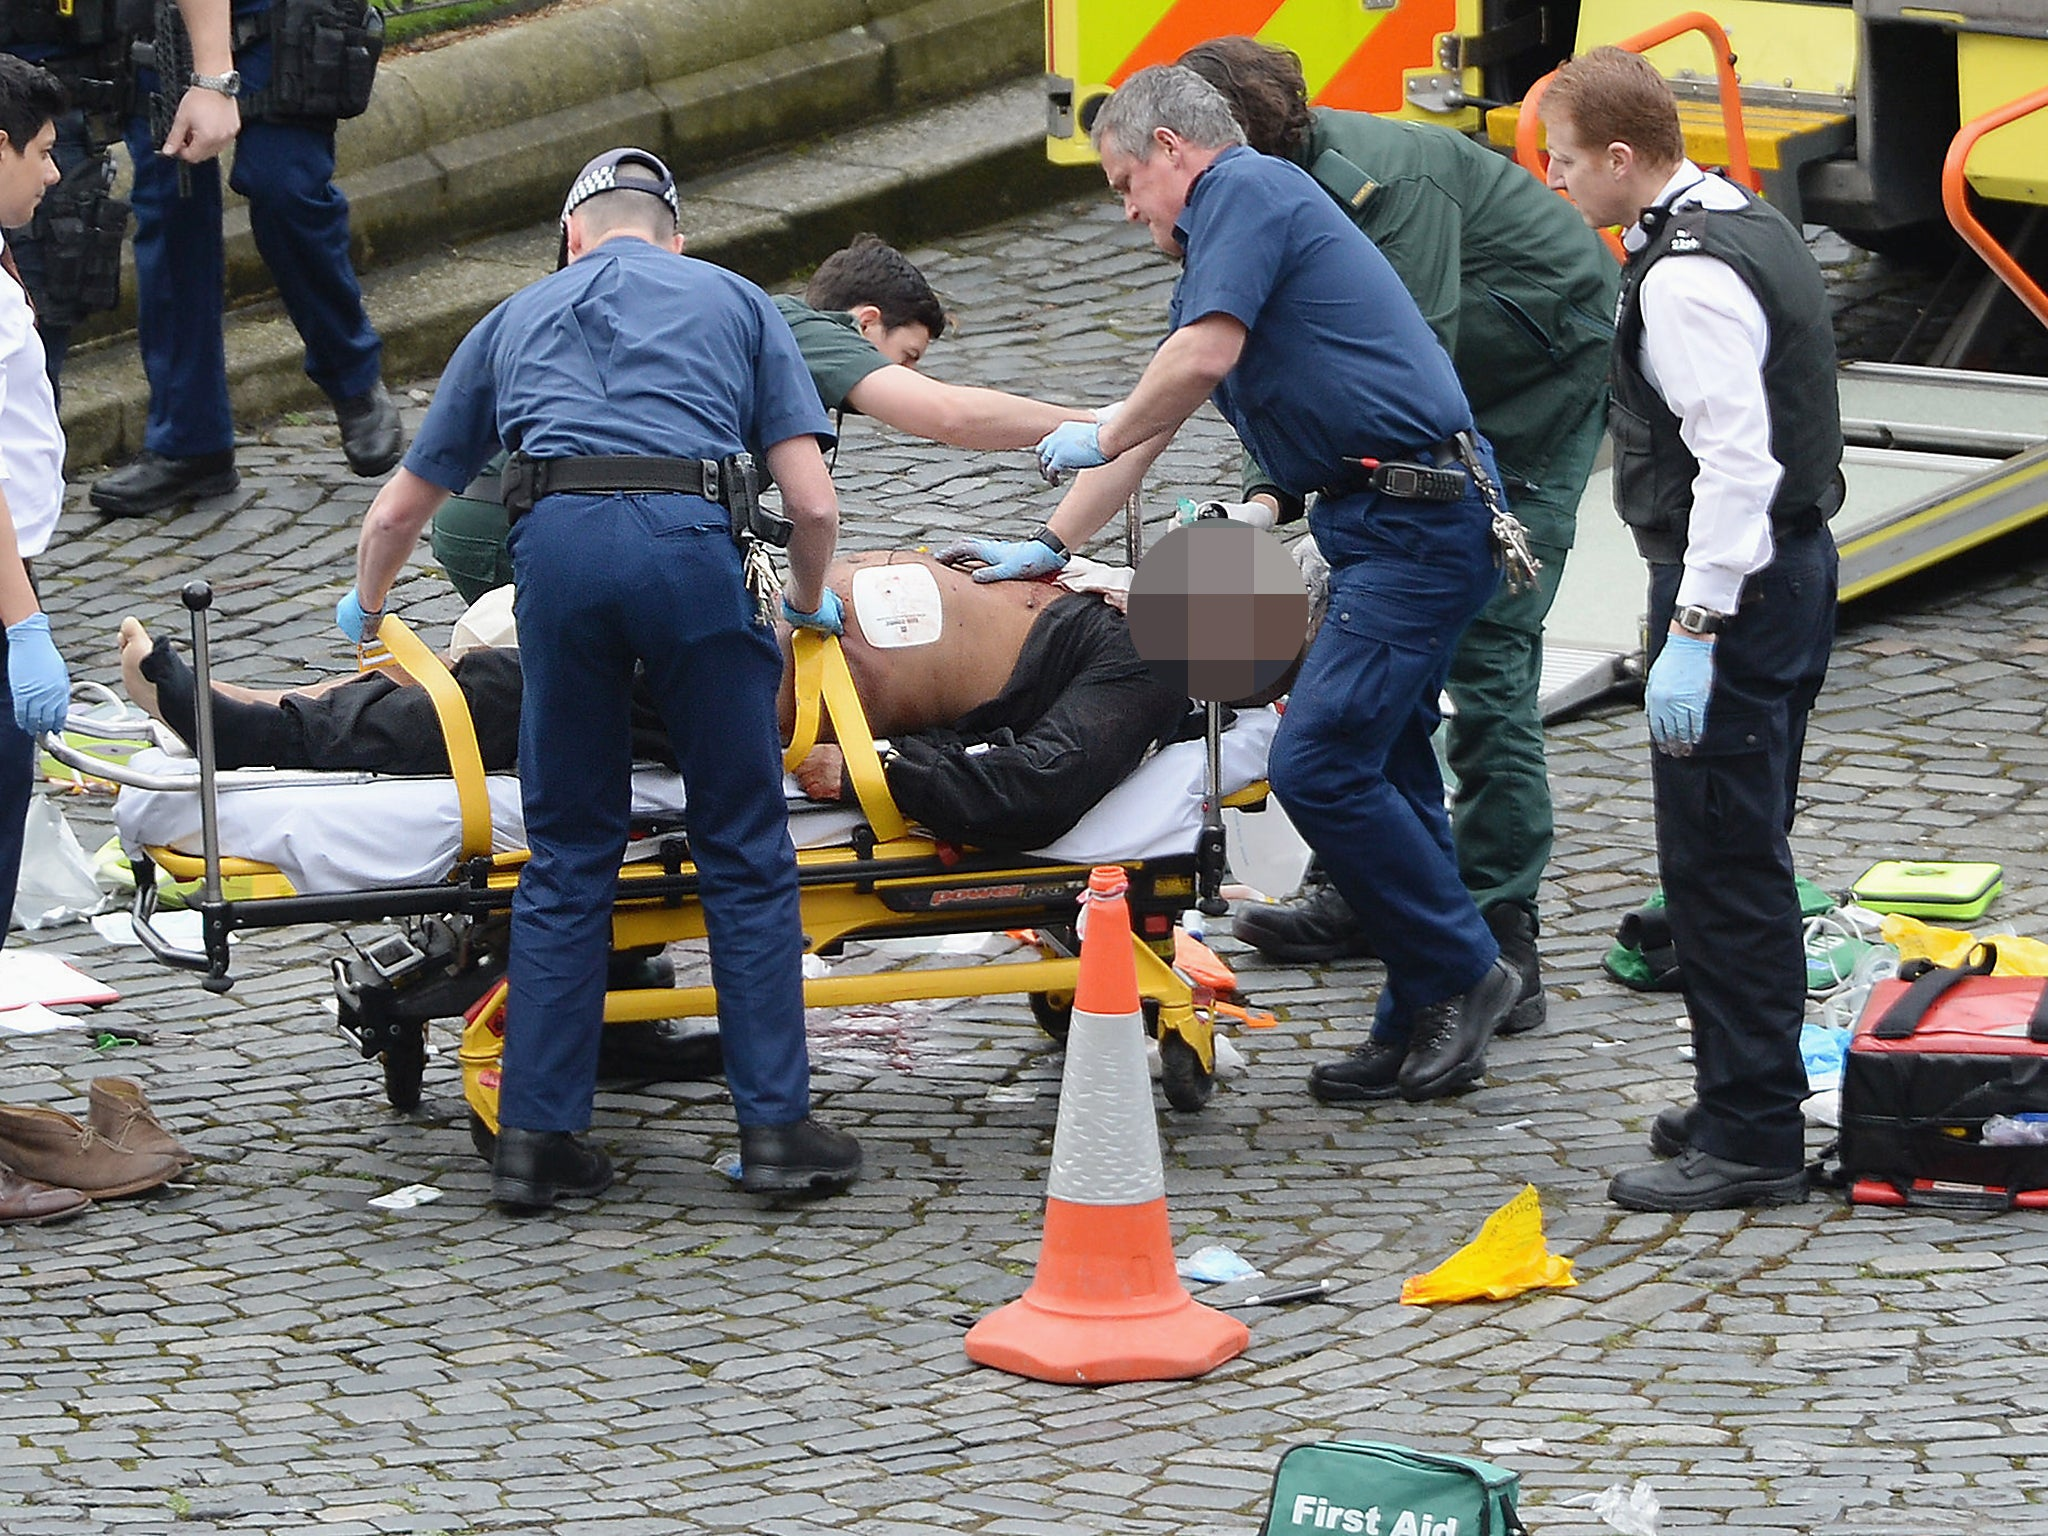 London attack latest: Police hunt for potential second suspect in Westminster terror incident